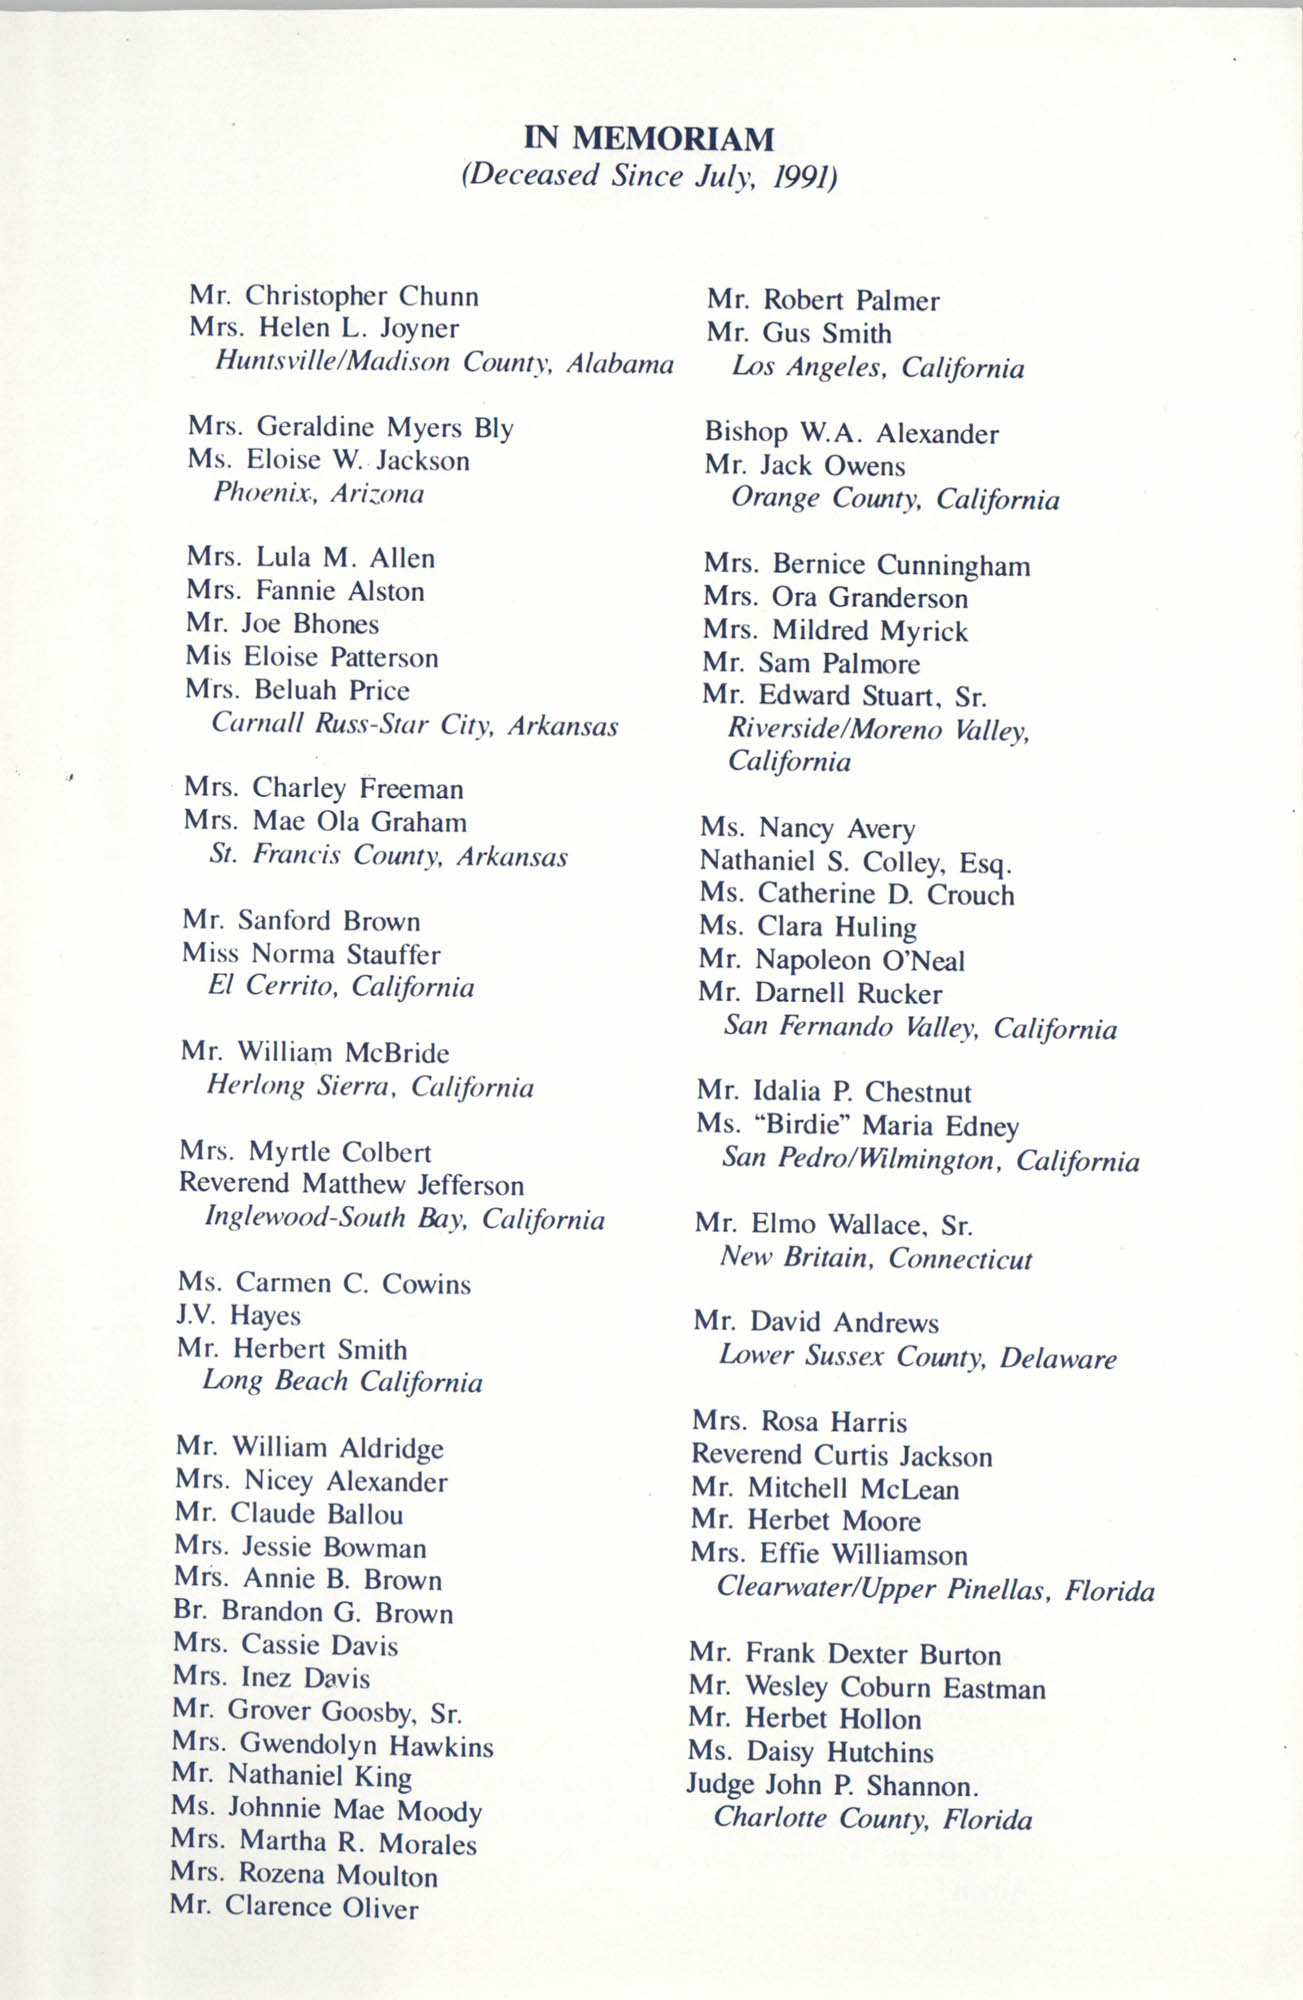 Memorial Service in Tribute to Deceased NAACP Officers and Member, July 12, 1992, Page 4